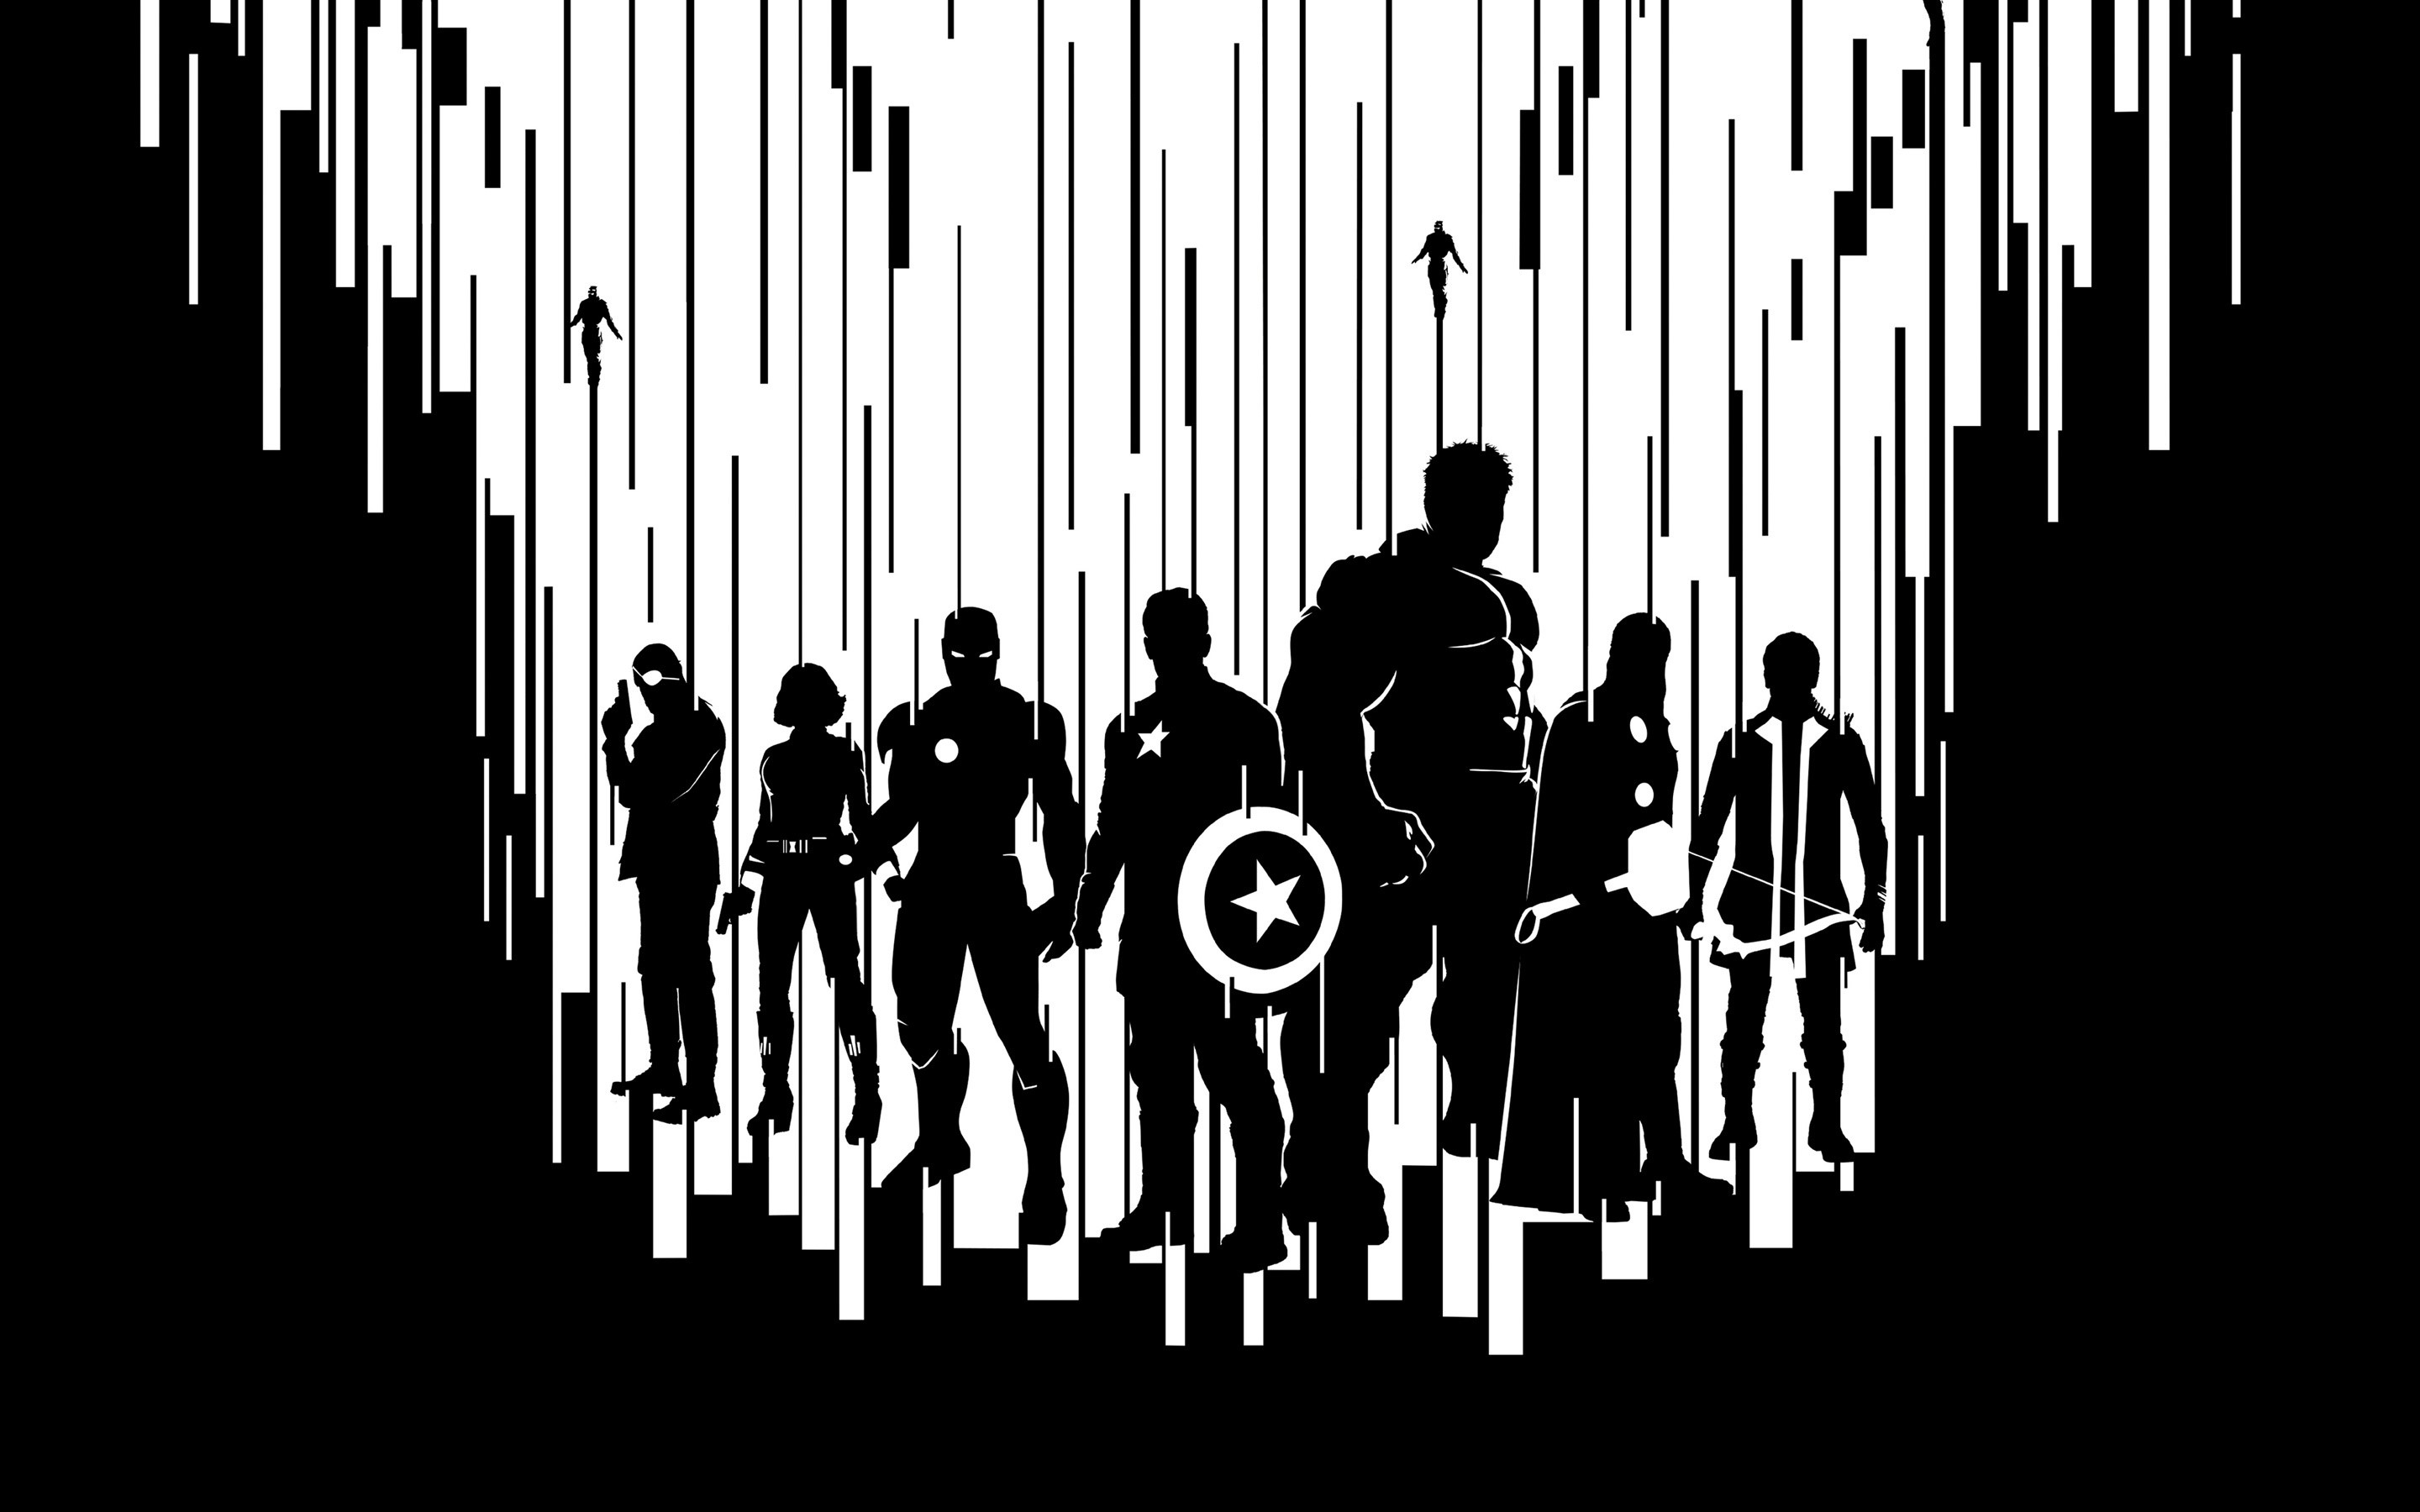 Wallpaper Shadows of the Avengers